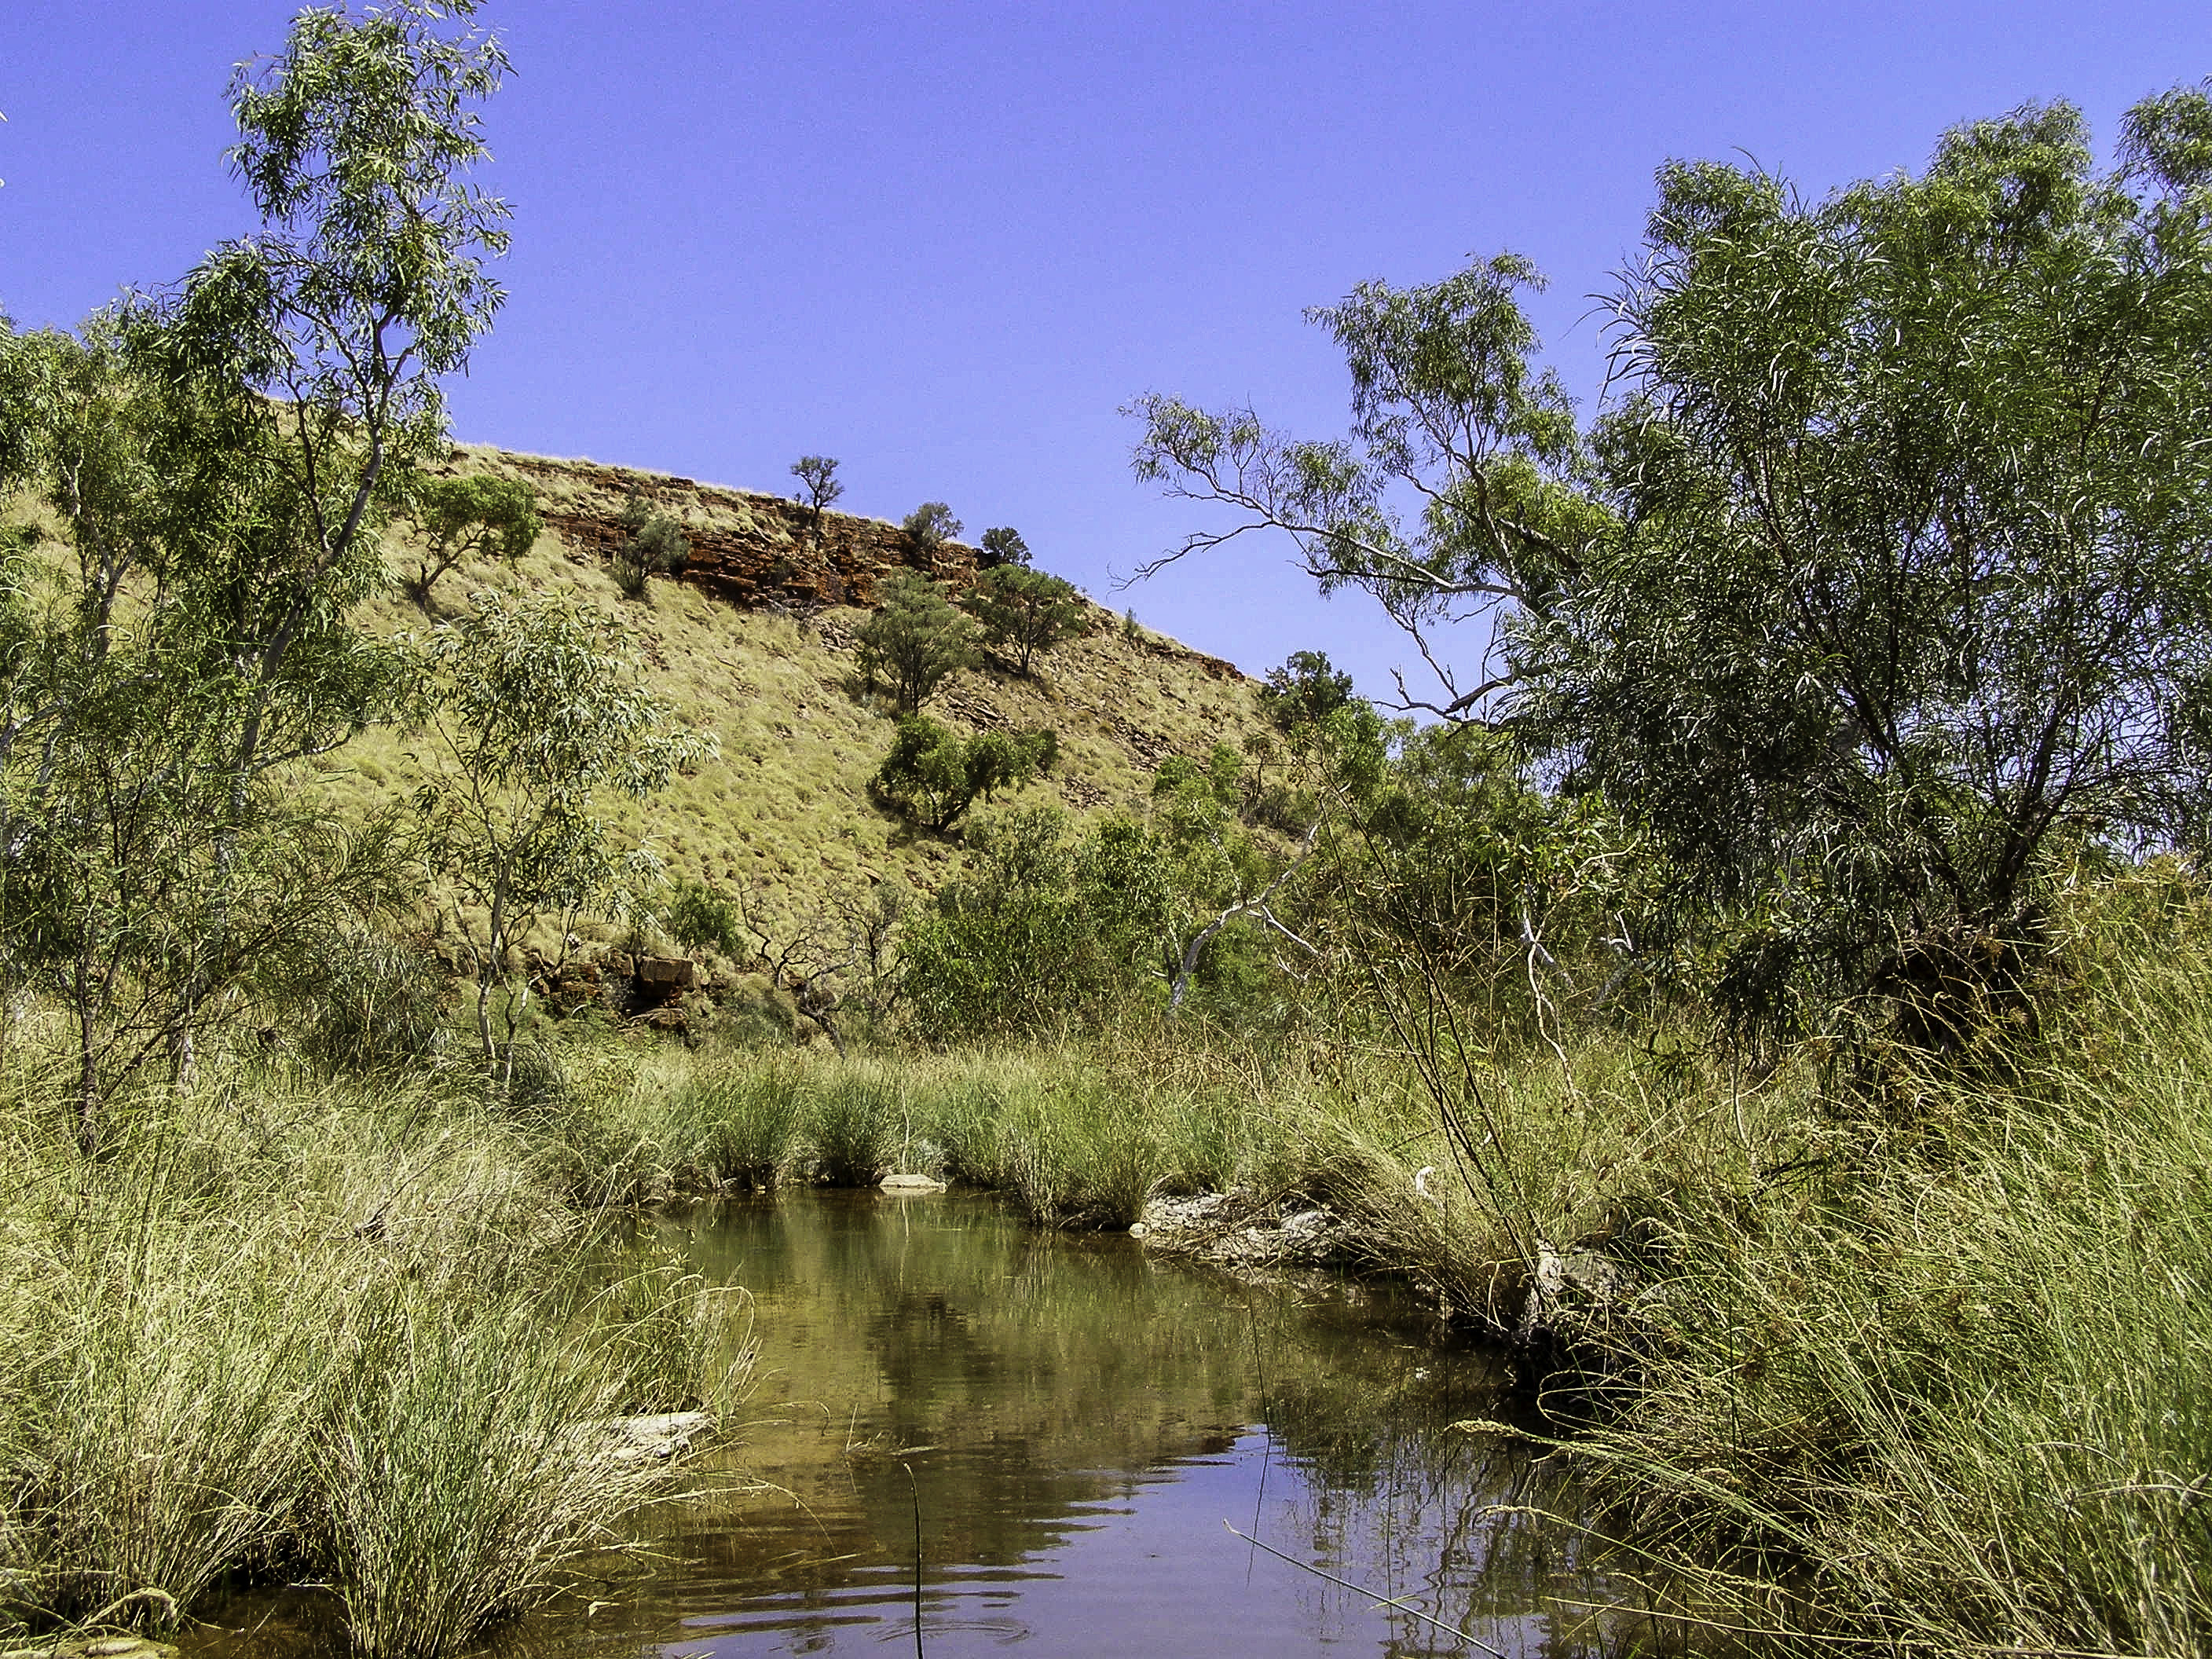 Landscape And Stream In Western Australia Image Free